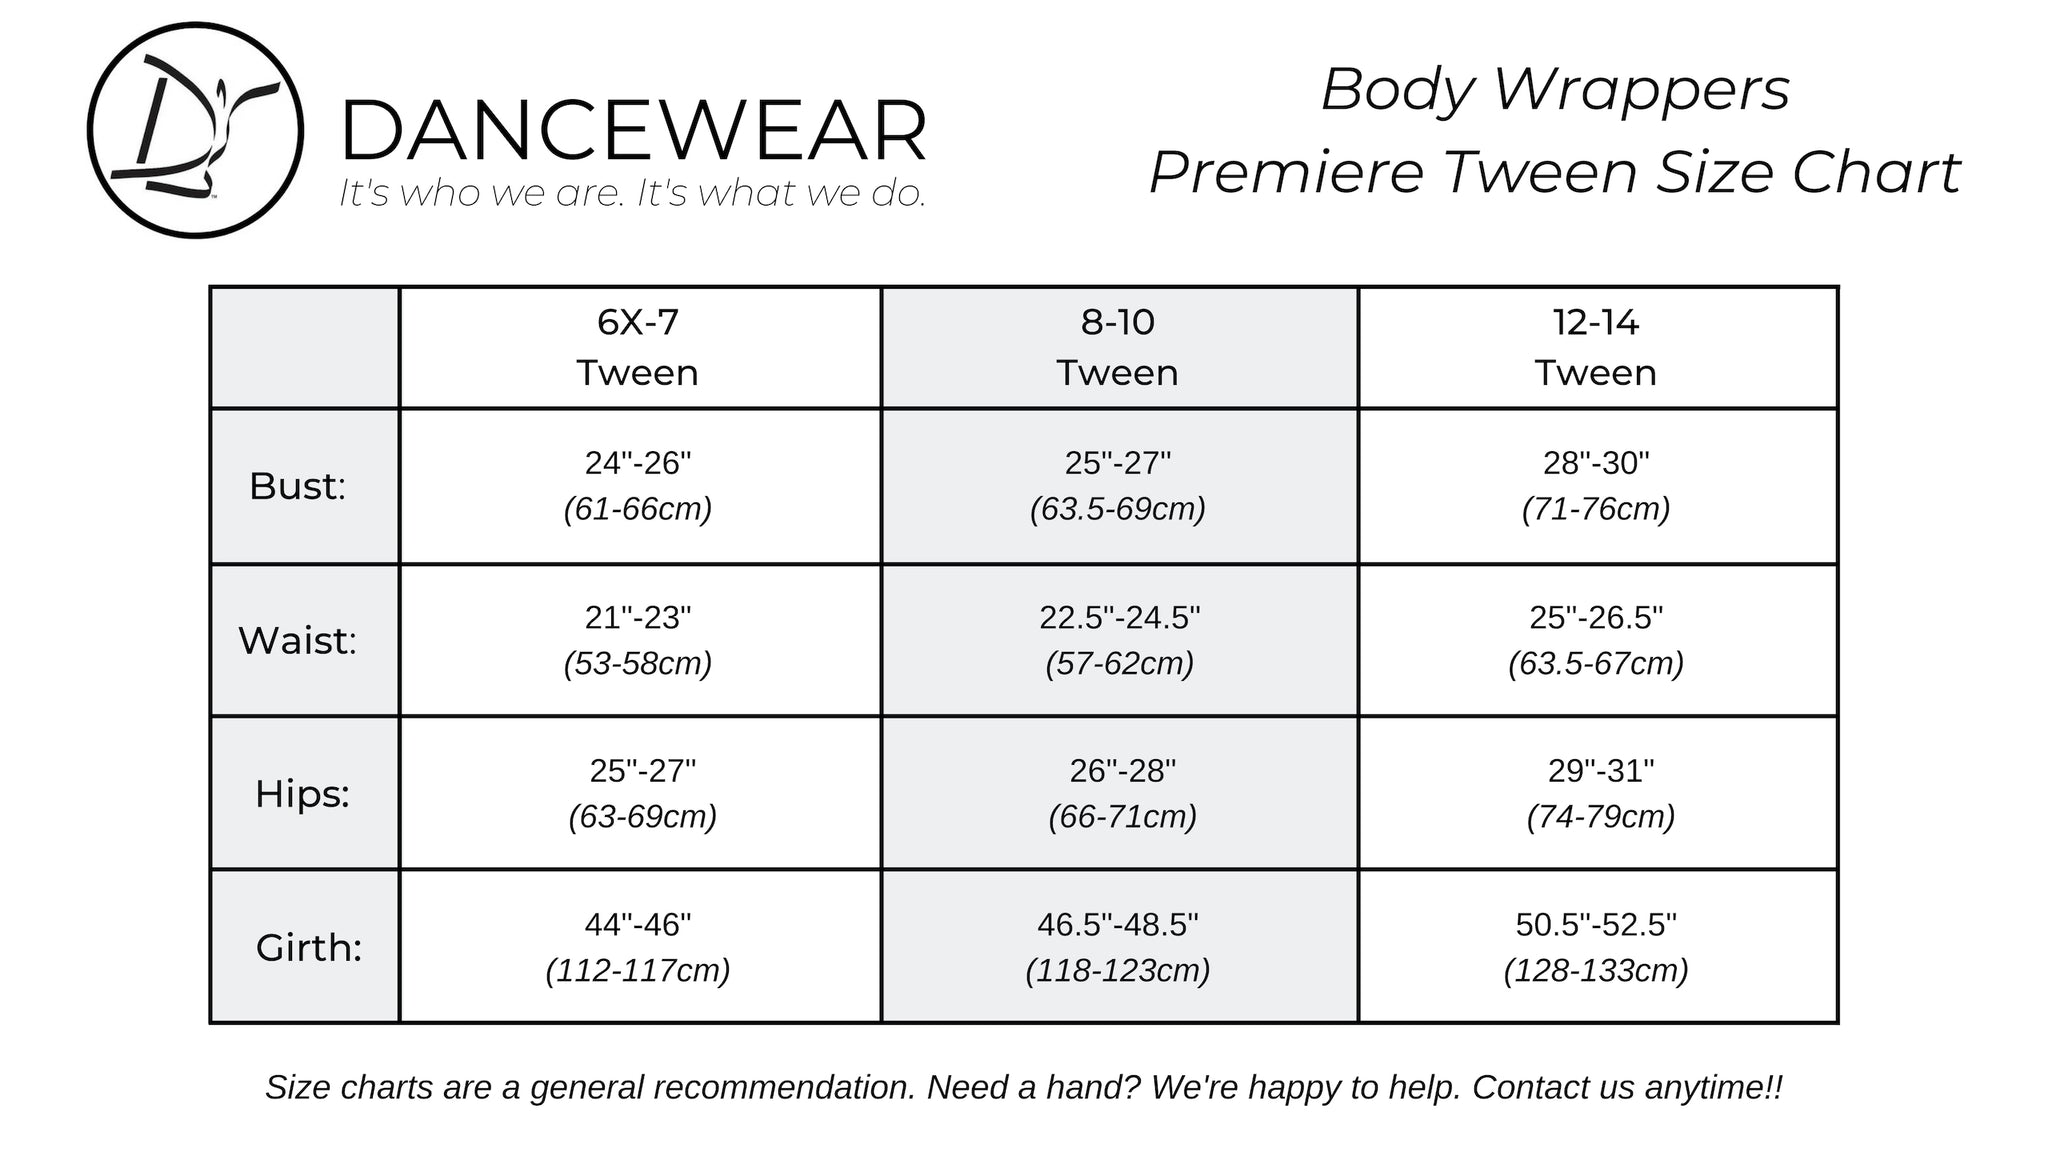 Body Wrappers Premiere Tween Size Chart